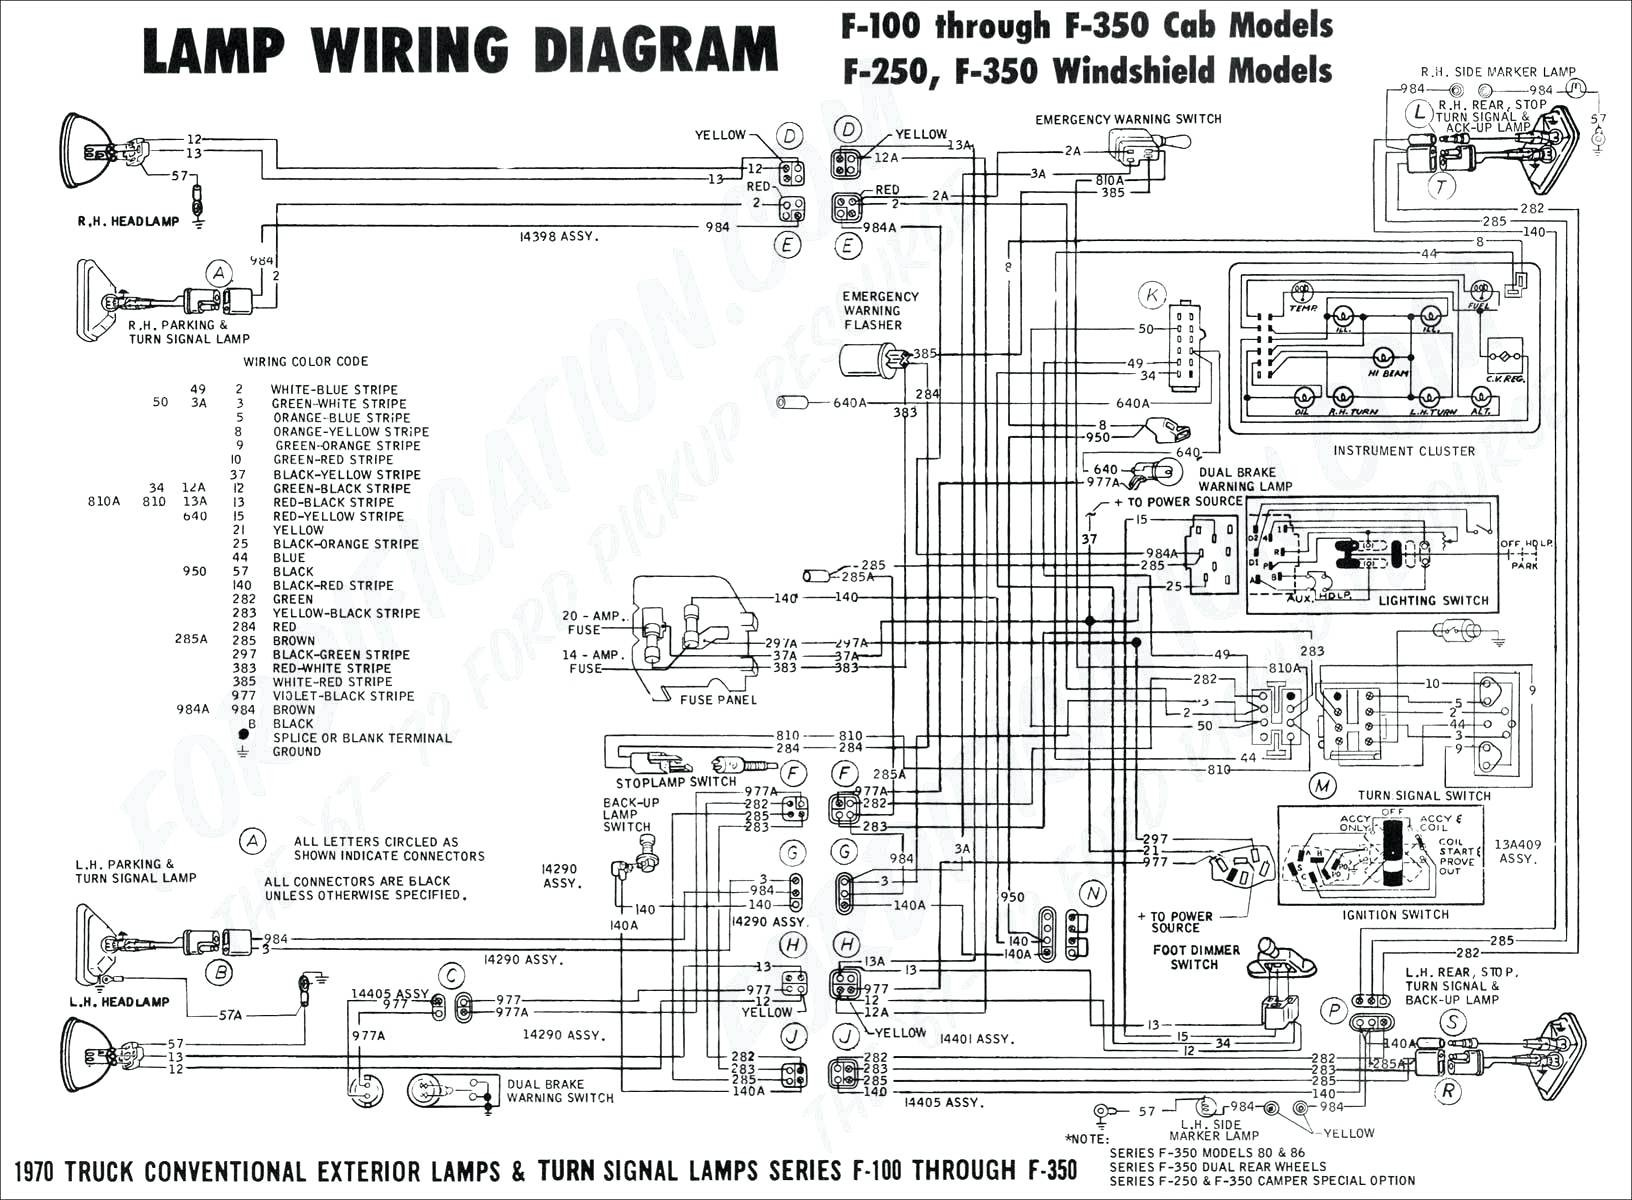 2001 Ford Ranger 4x4 Wiring Diagram Detailed Schematics Tow Trailer Towing Electrical Trusted F550